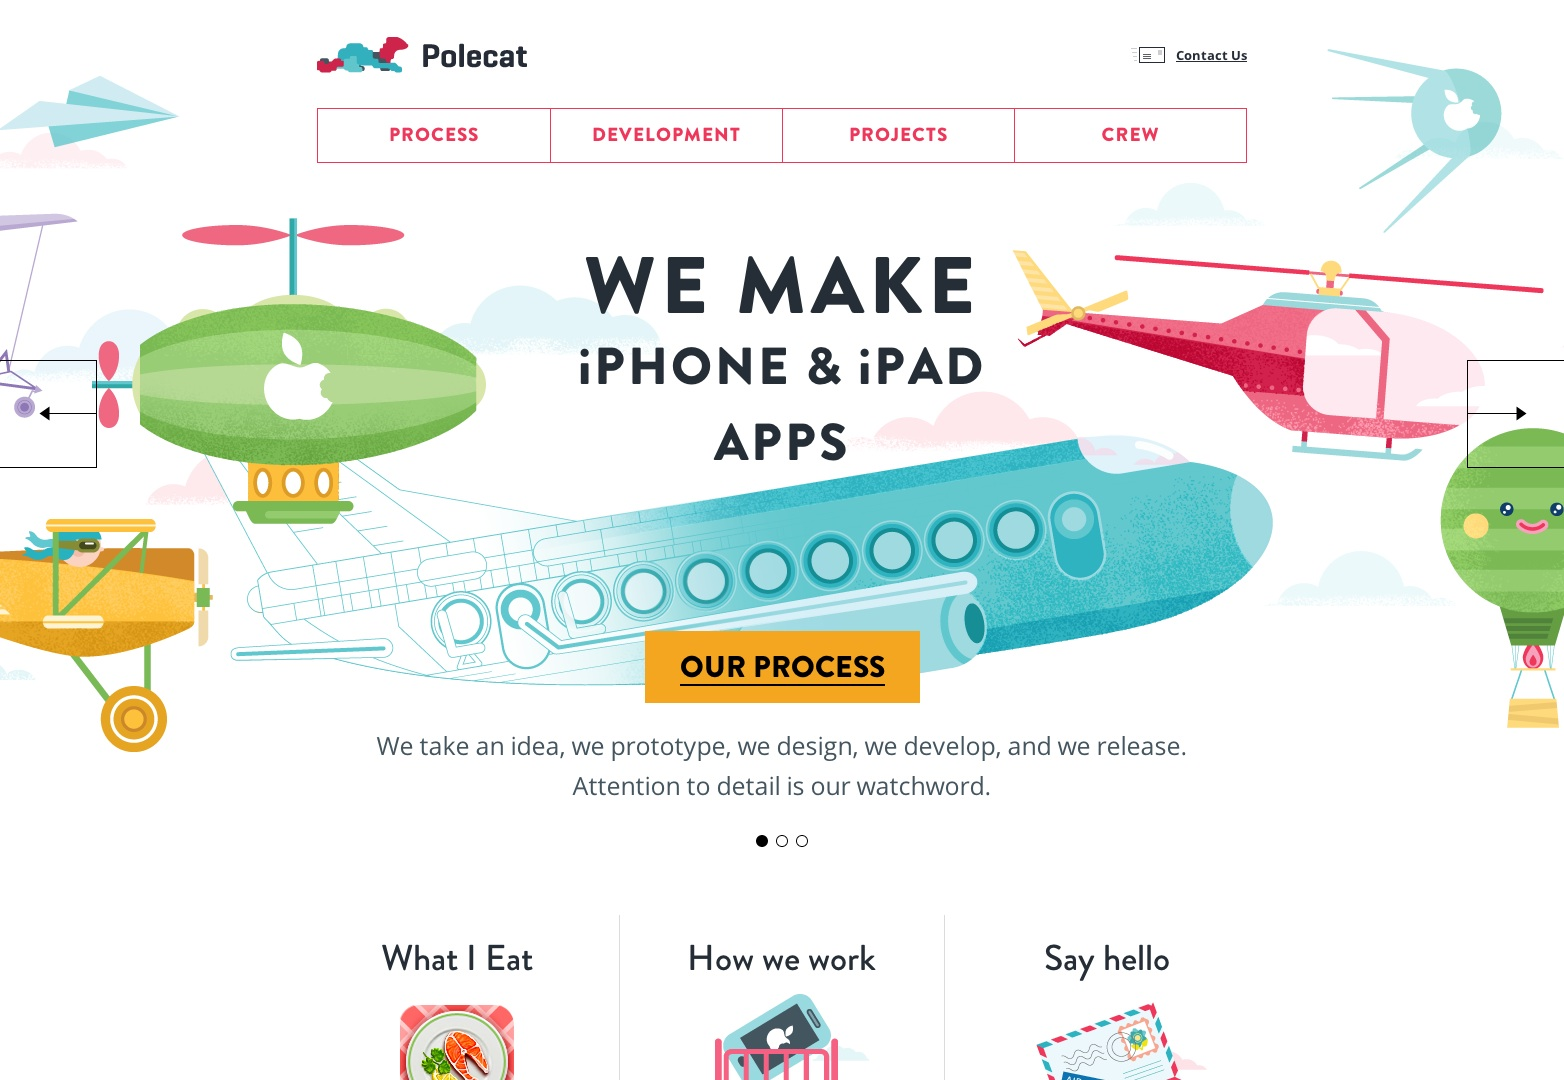 Custom iPhone and iPad apps development | Polecat agency